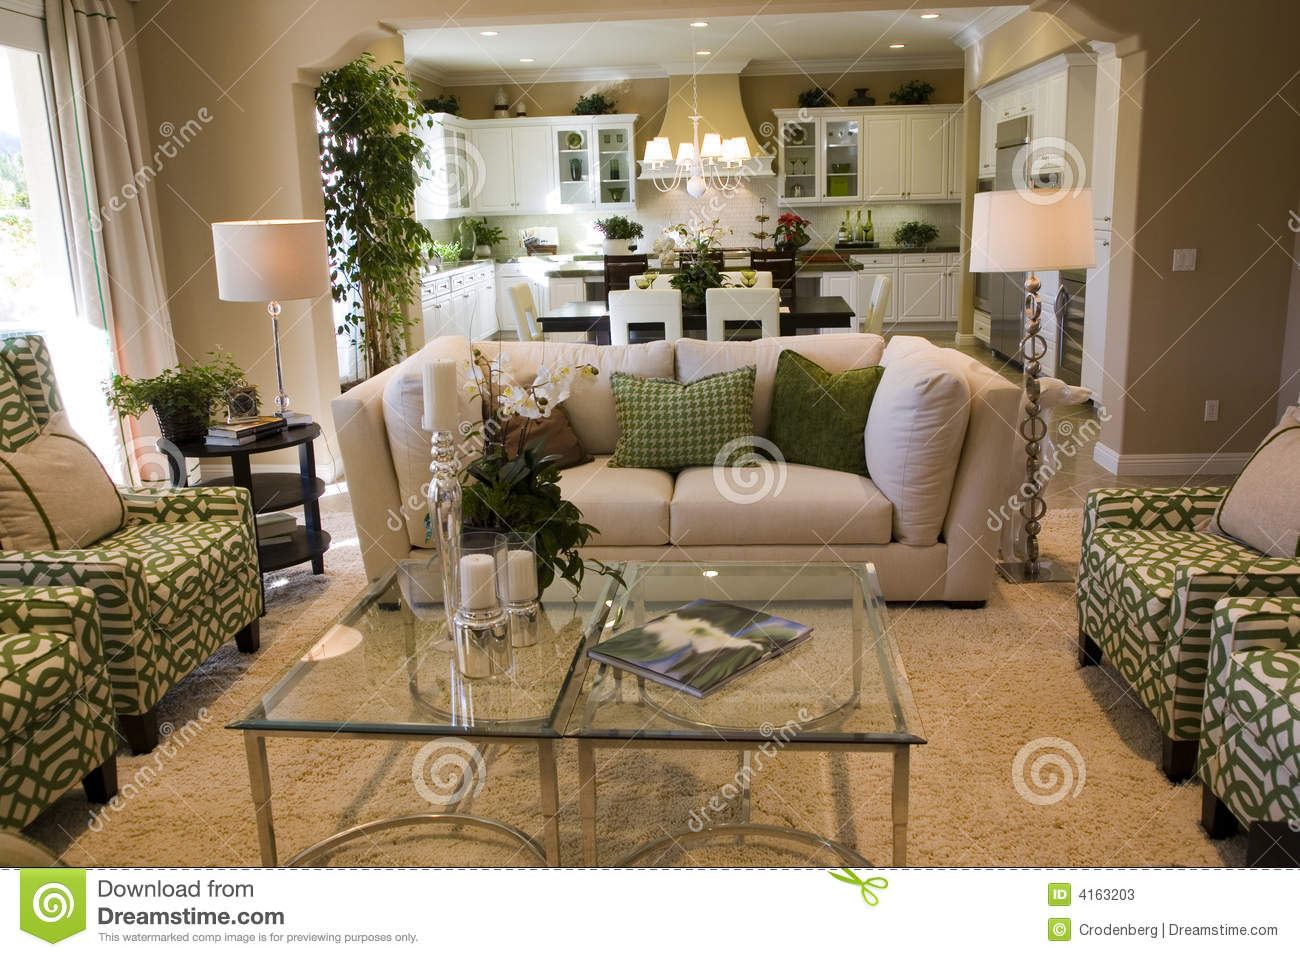 More similar stock images of ` Luxury home living room `